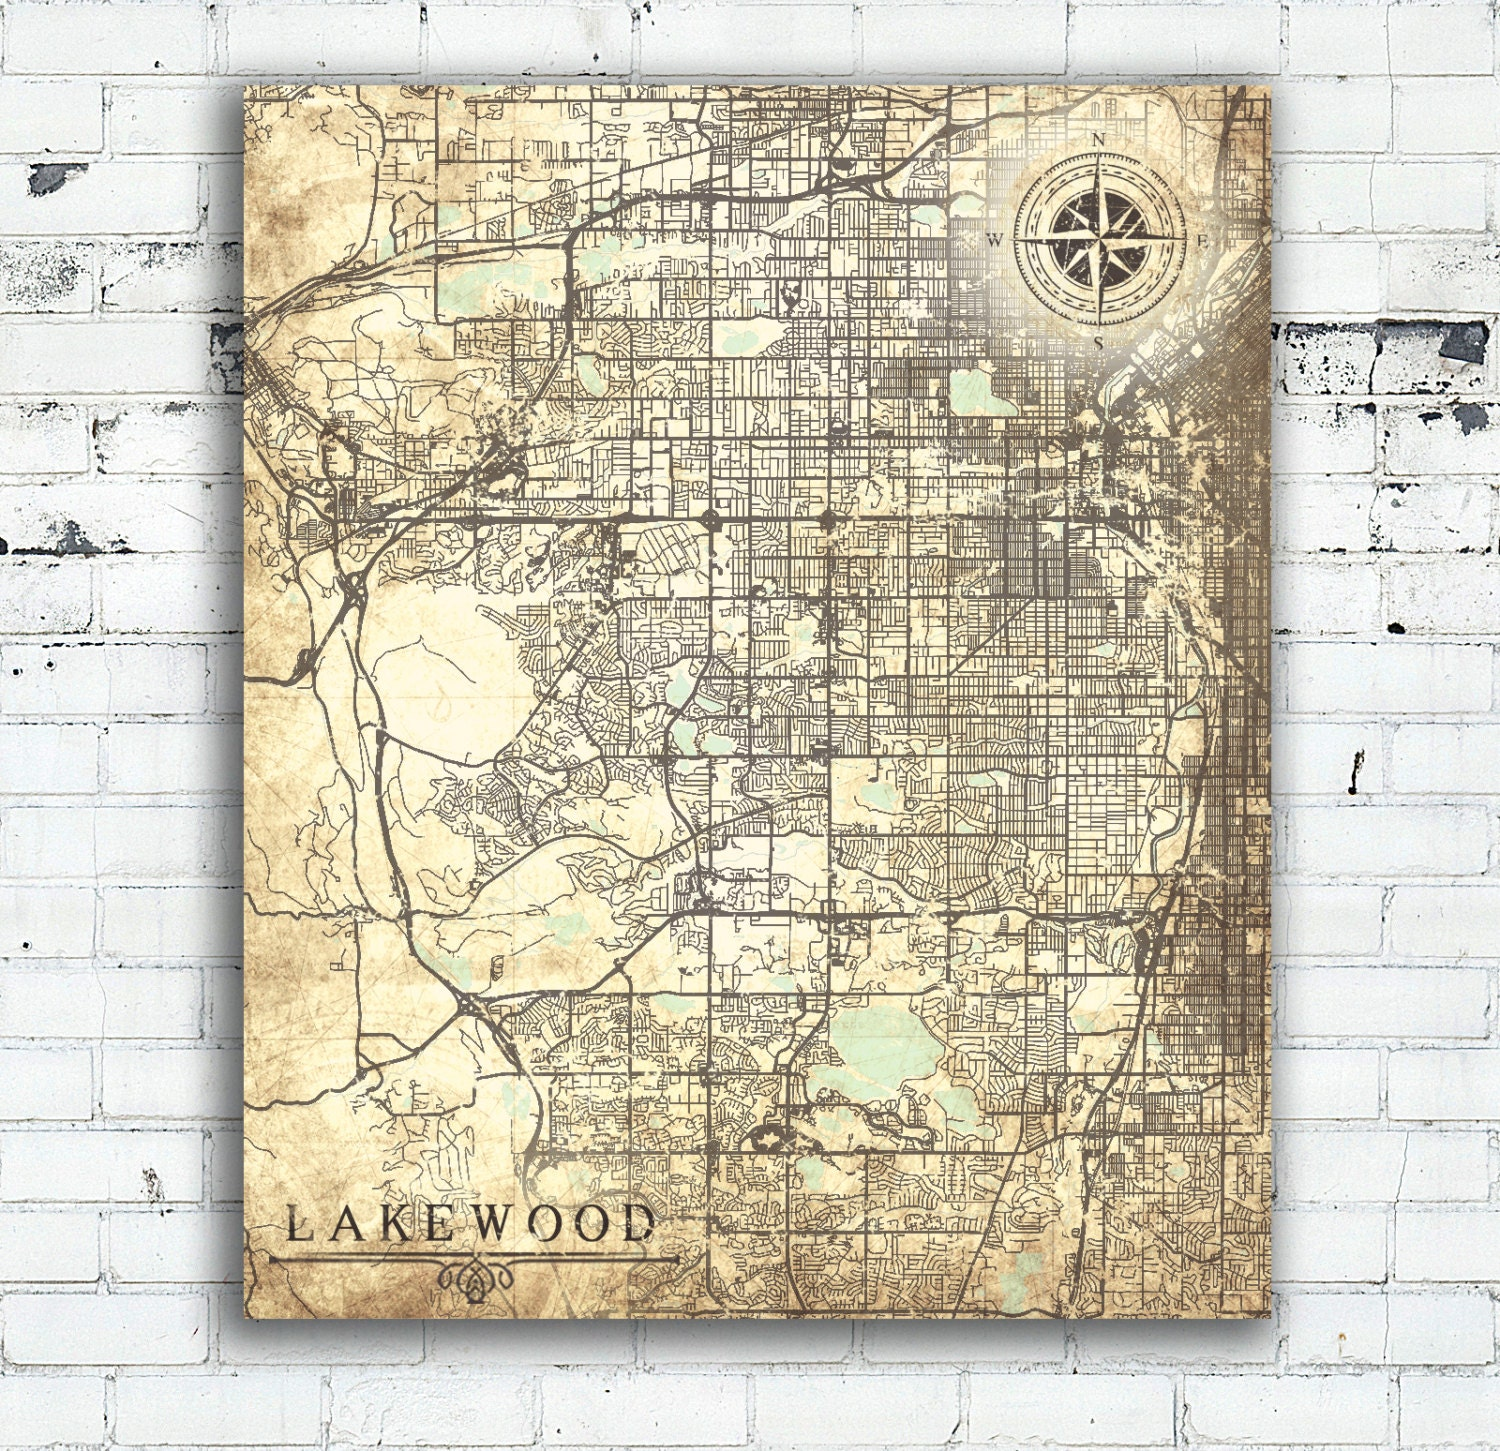 LAKEWOOD CO Canvas Print Colorado Lakewood Co City Vintage map ...